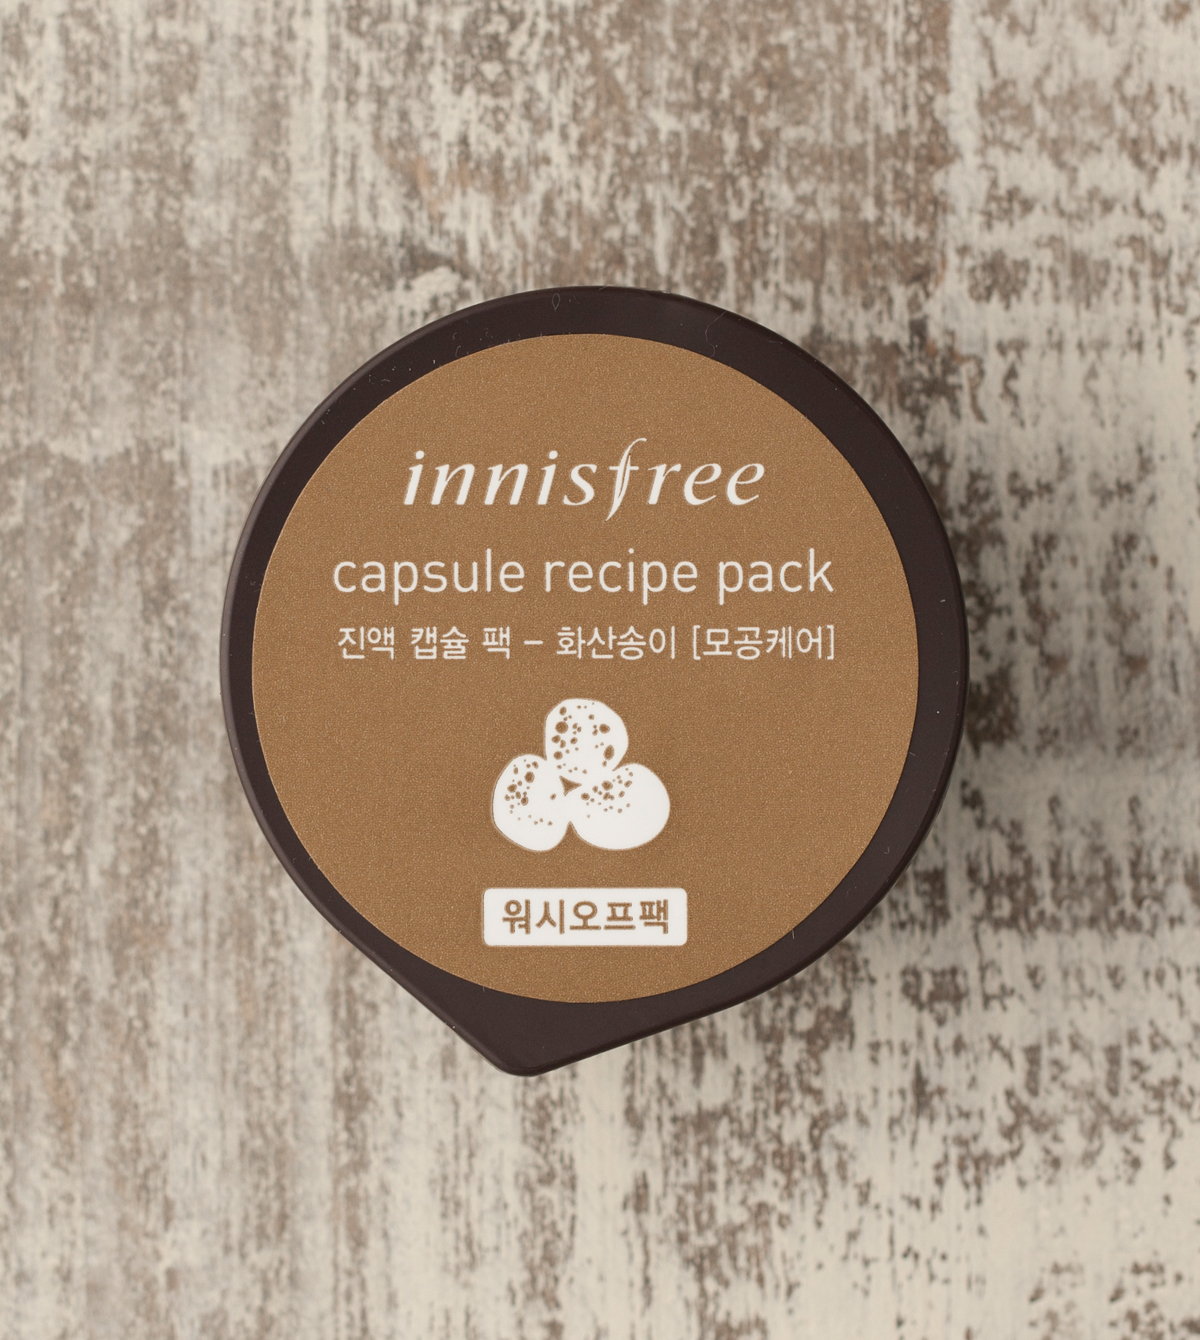 skin care products and creams for oily skin - Innisfree Capsule Recipe Pack - Volcanic Clay